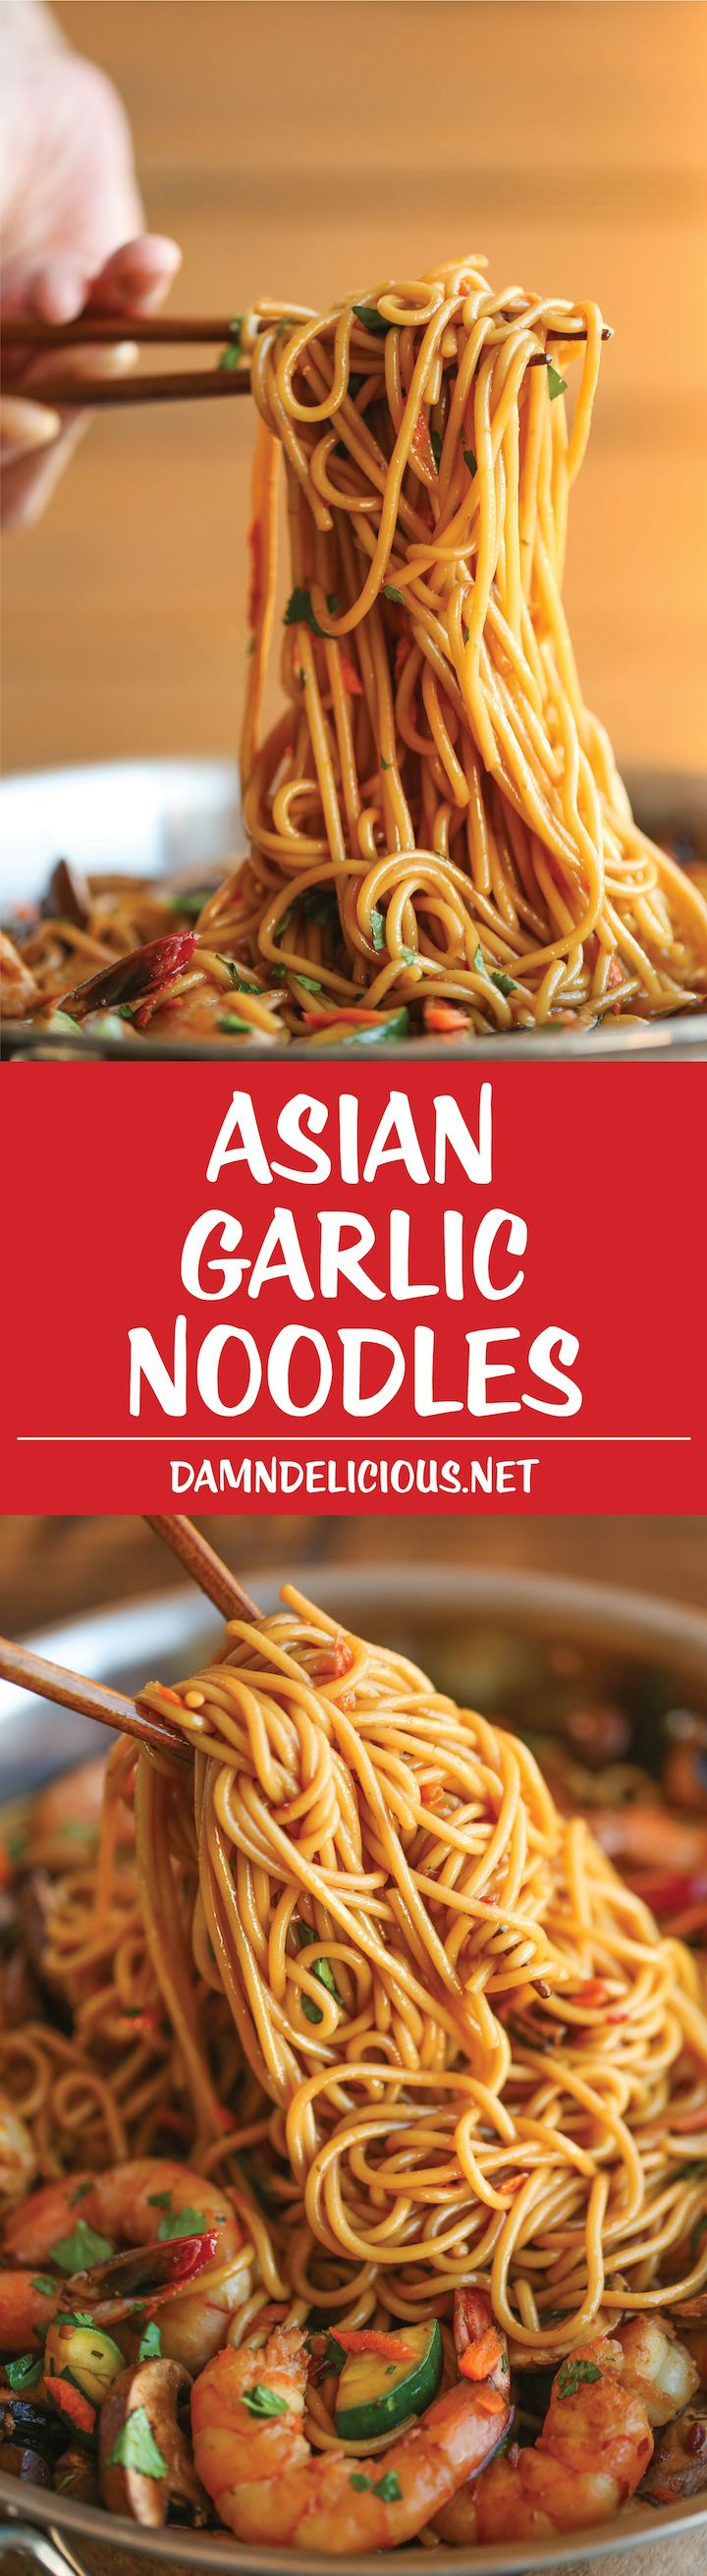 Asian Garlic Noodles – Easy peasy Asian noodle stir-fry using pantry ingredients that you already have on